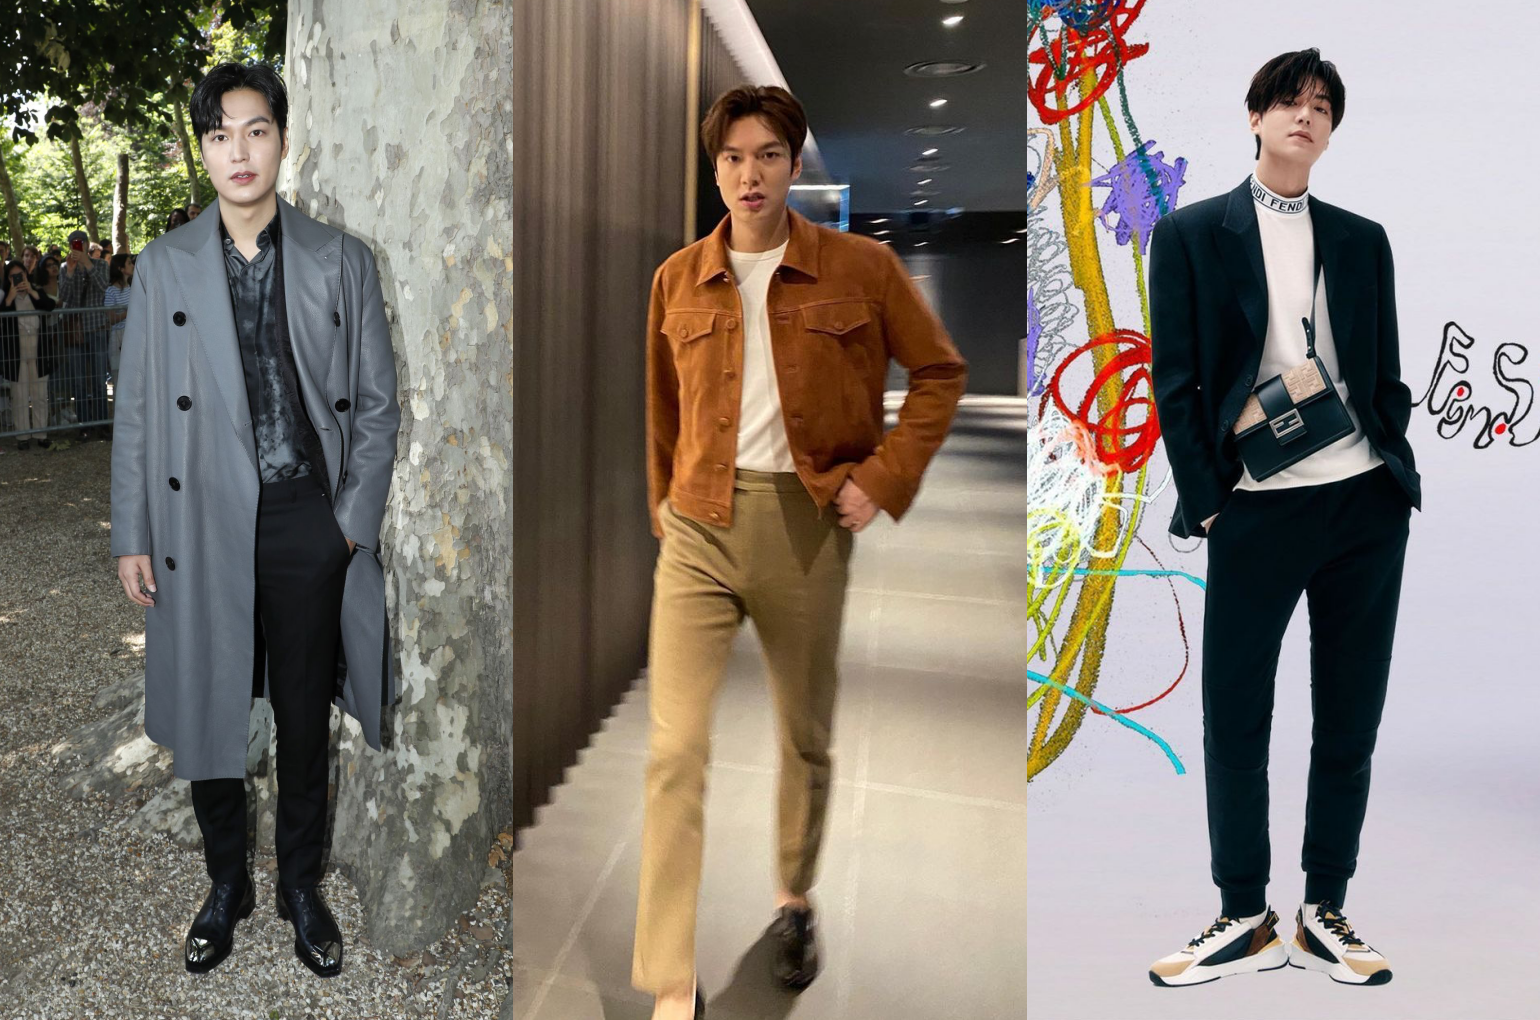 In Photos: 9 Of Lee Min-ho's Best Looks On- And Off-Screen